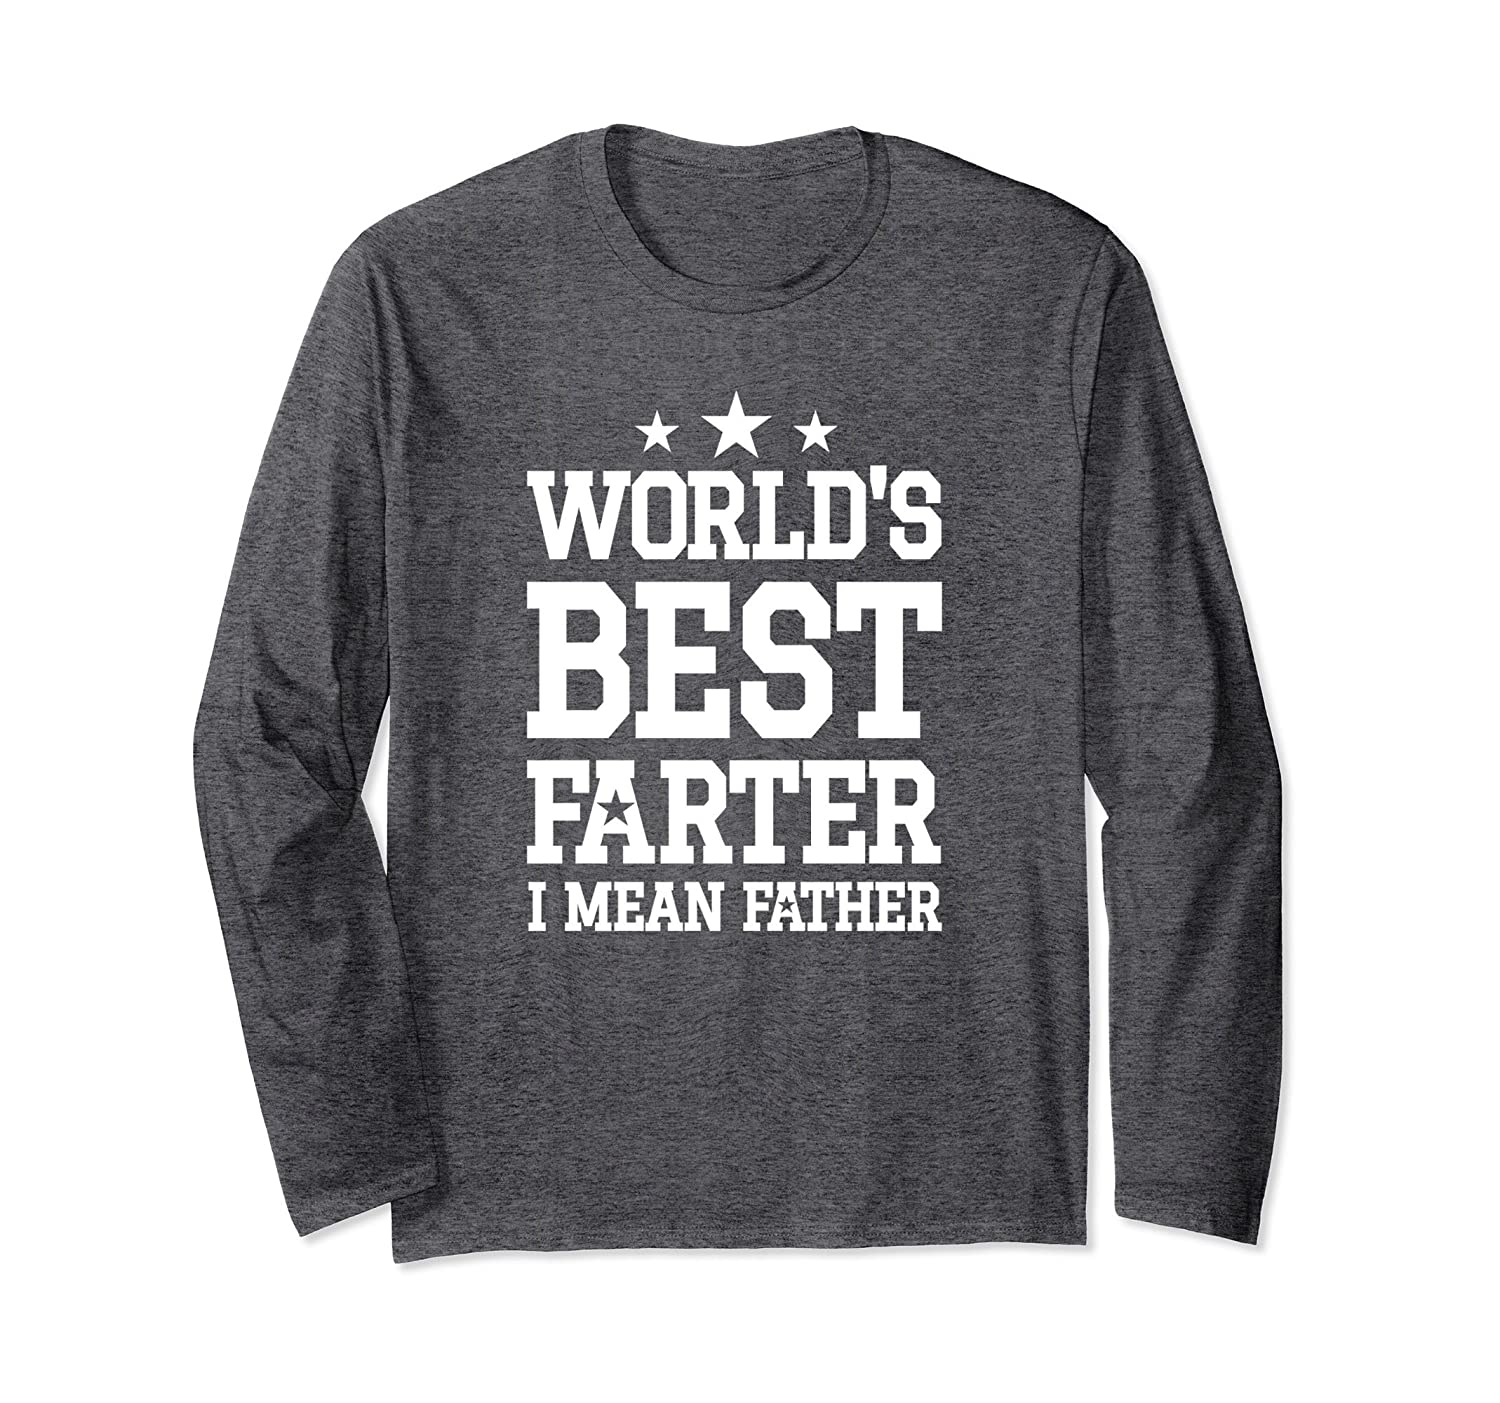 b6605ab95a World's Best Farter Funny Father Long Sleeve T-Shirt-ah my shirt one gift